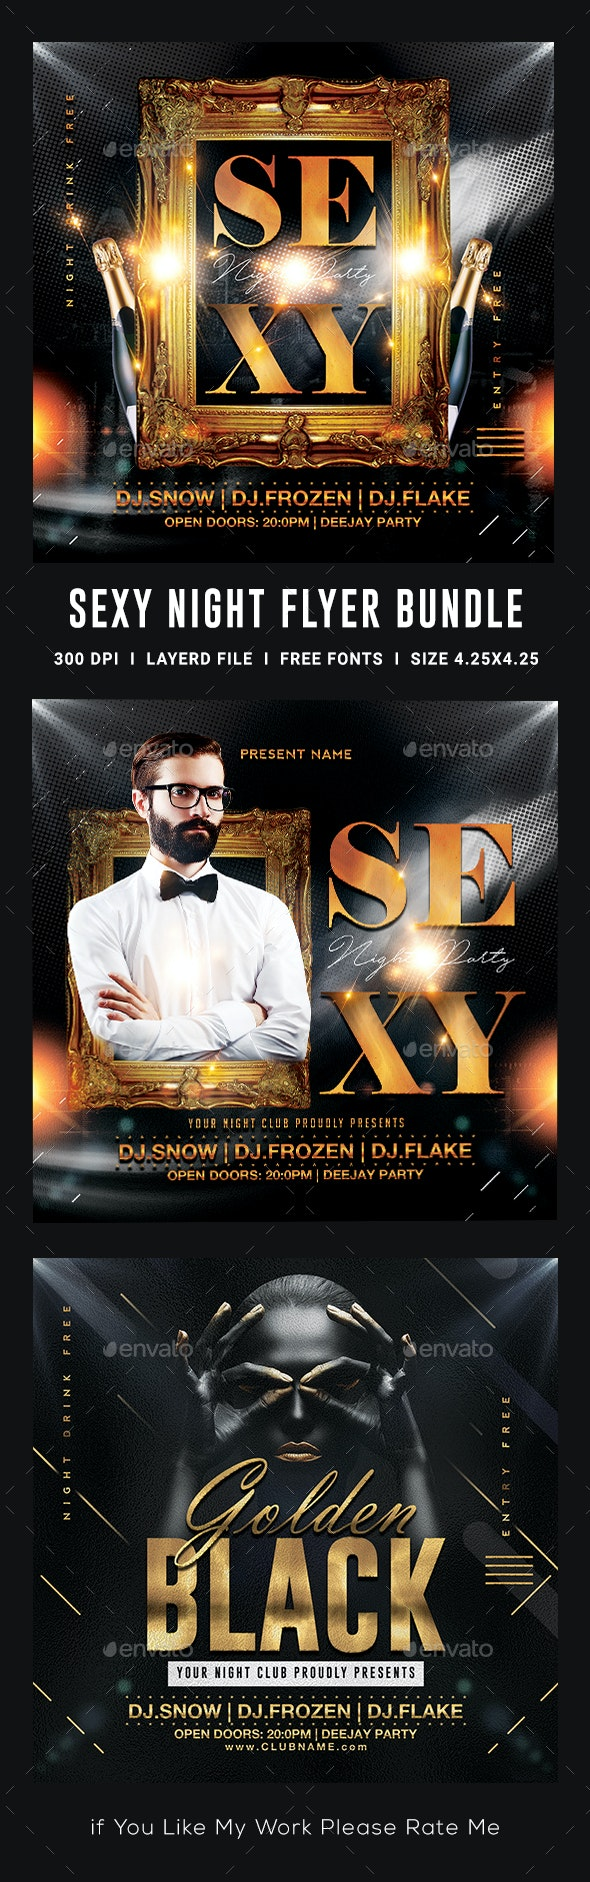 Sexy Night Flyer Template Bundle - Clubs & Parties Events